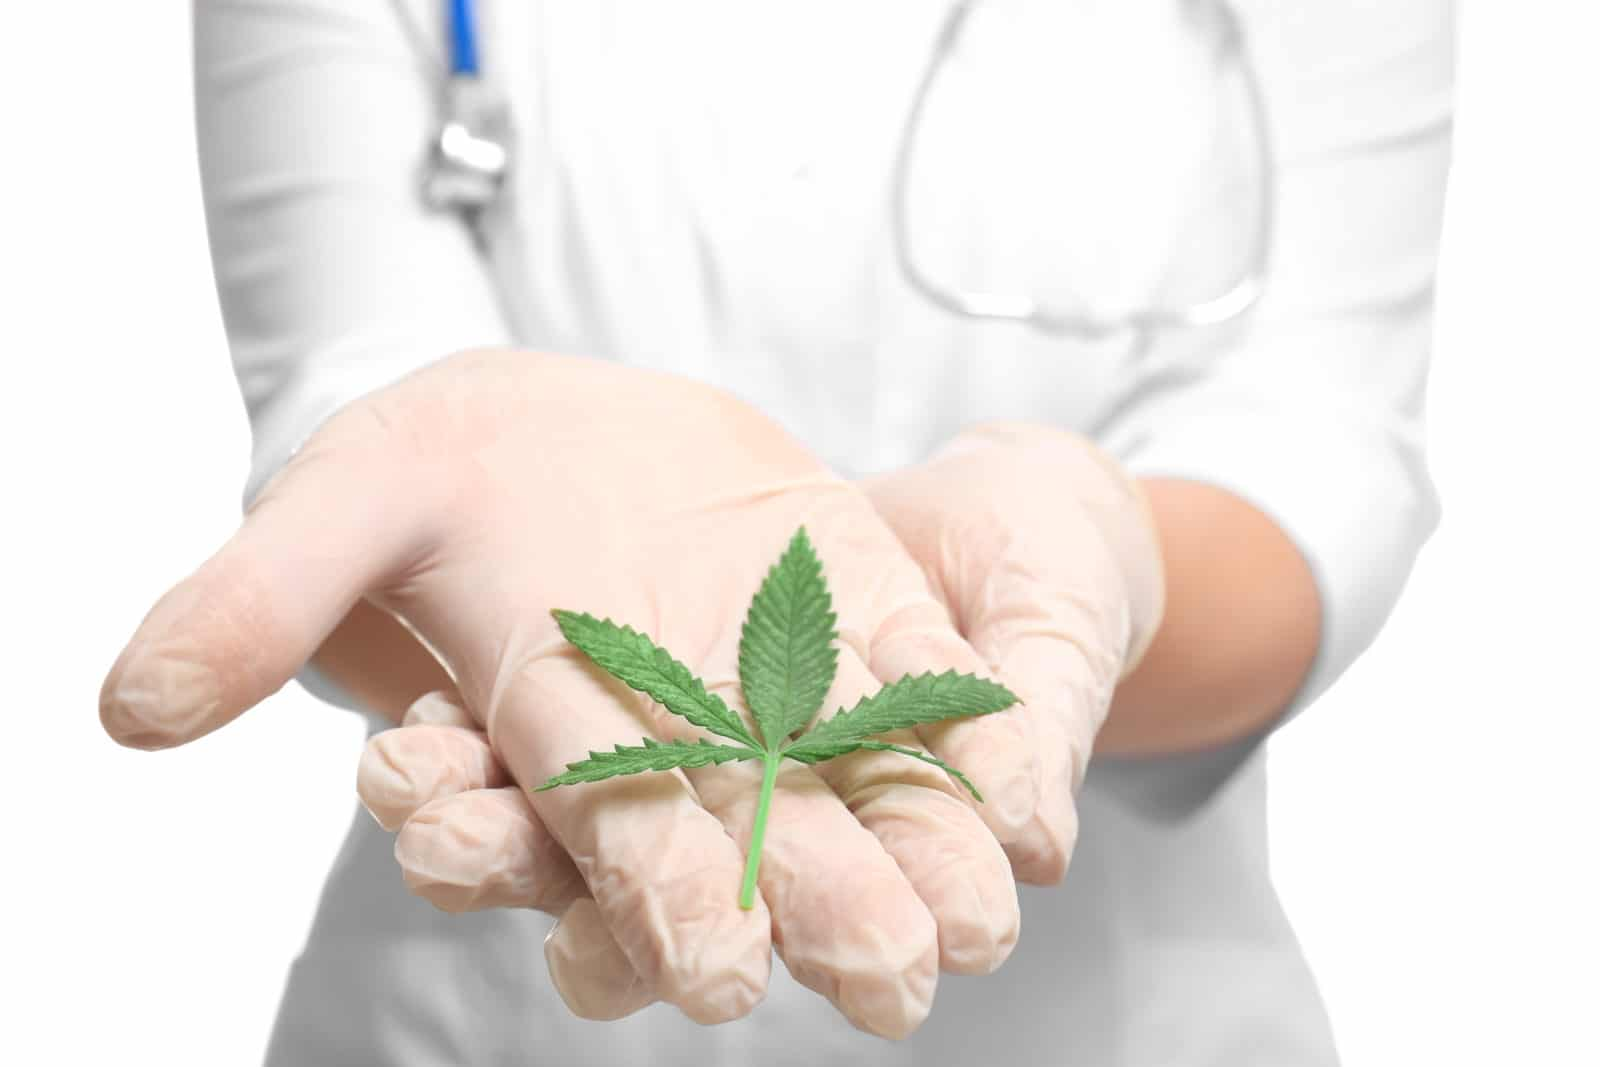 marijuana legalization and pain management, How Marijuana Legalization Impacts Pain Management